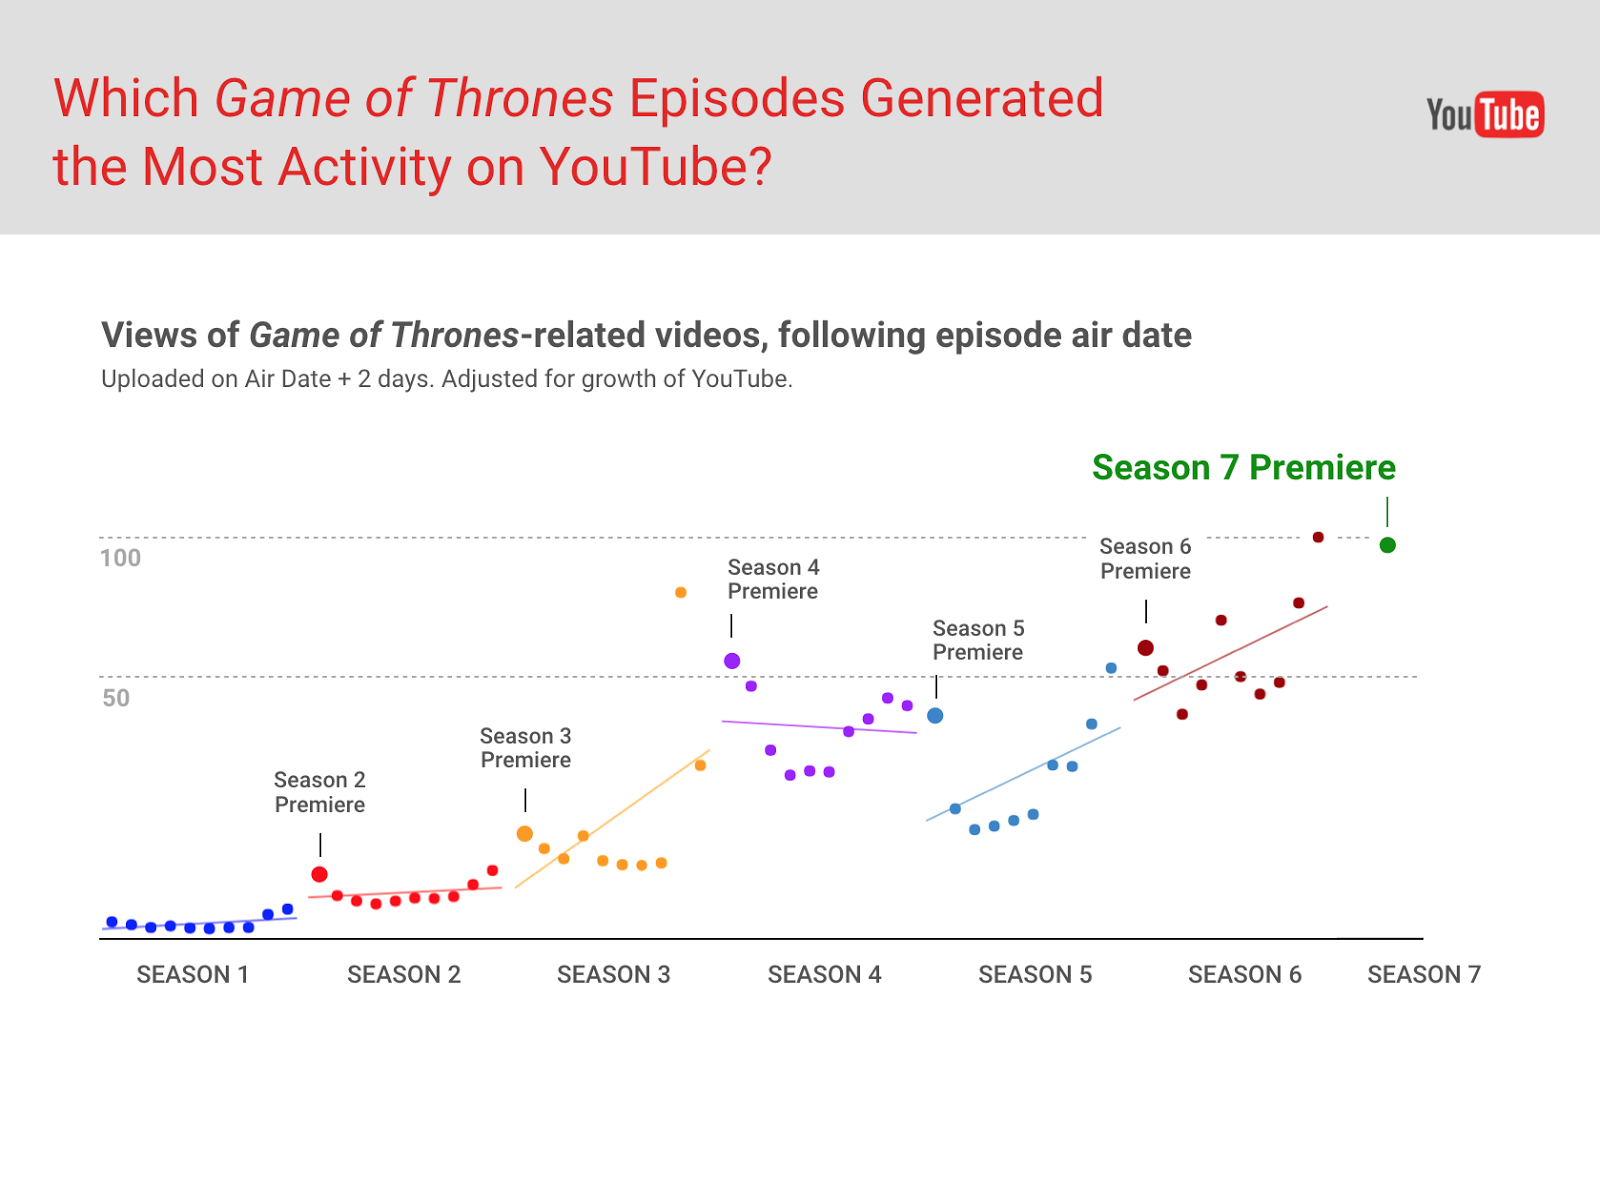 small resolution of the season 7 premiere generated the most activity on youtube compared to any other premiere seasons 1 6